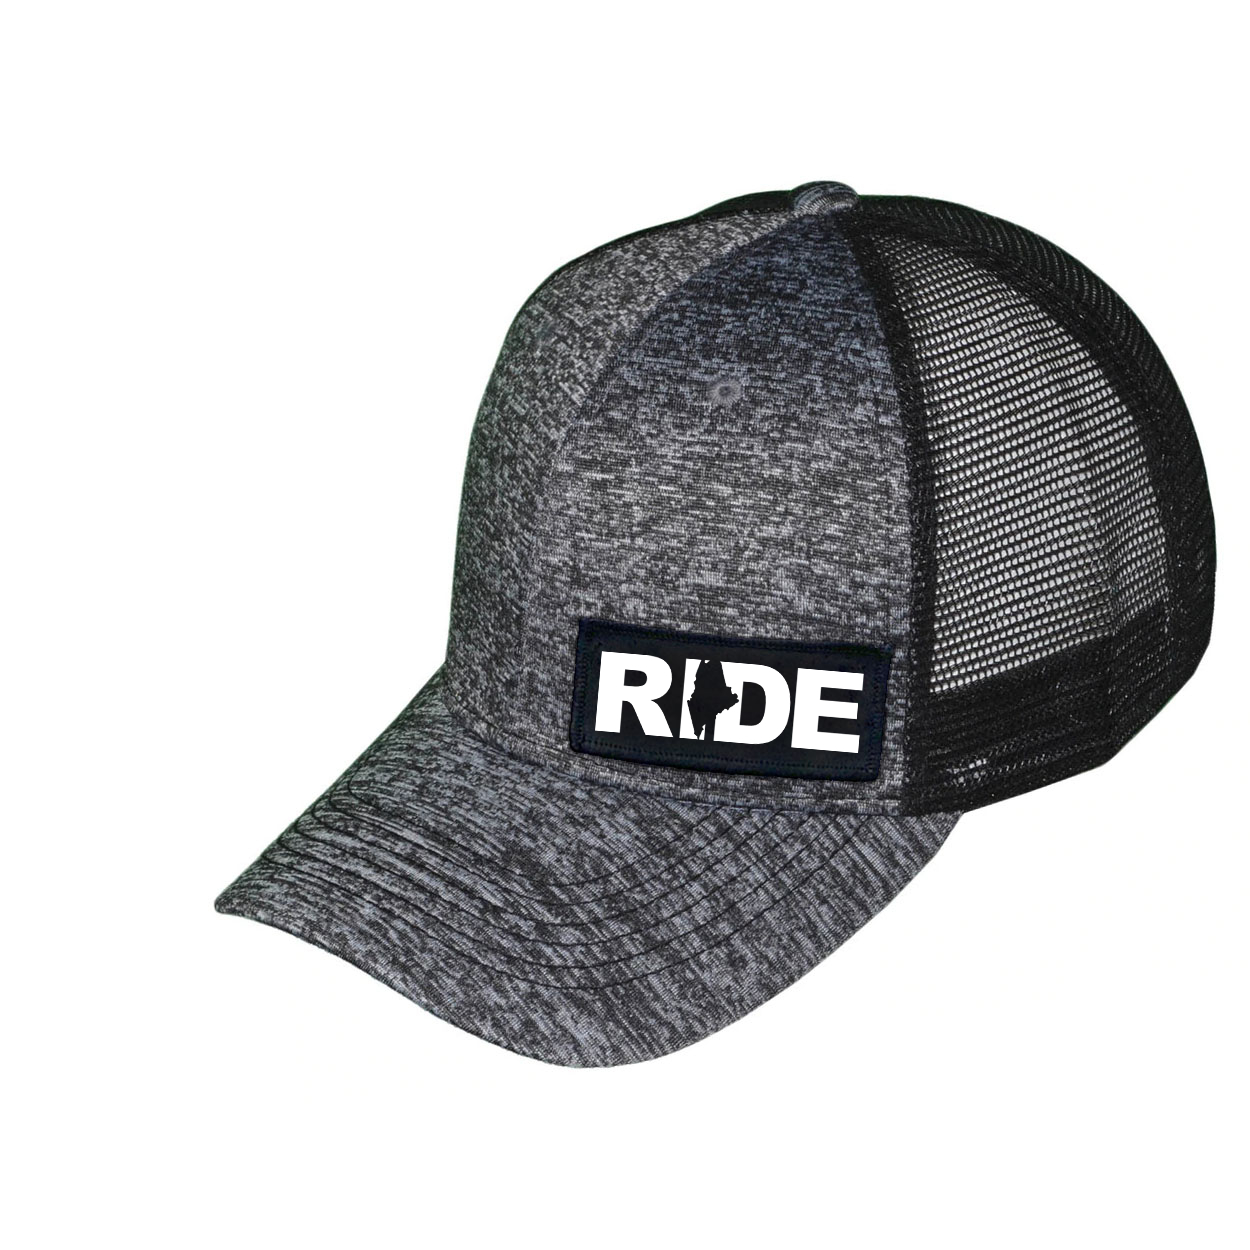 Ride Maine Night Out Woven Patch Melange Snapback Trucker Hat Gray/Black (White Logo)